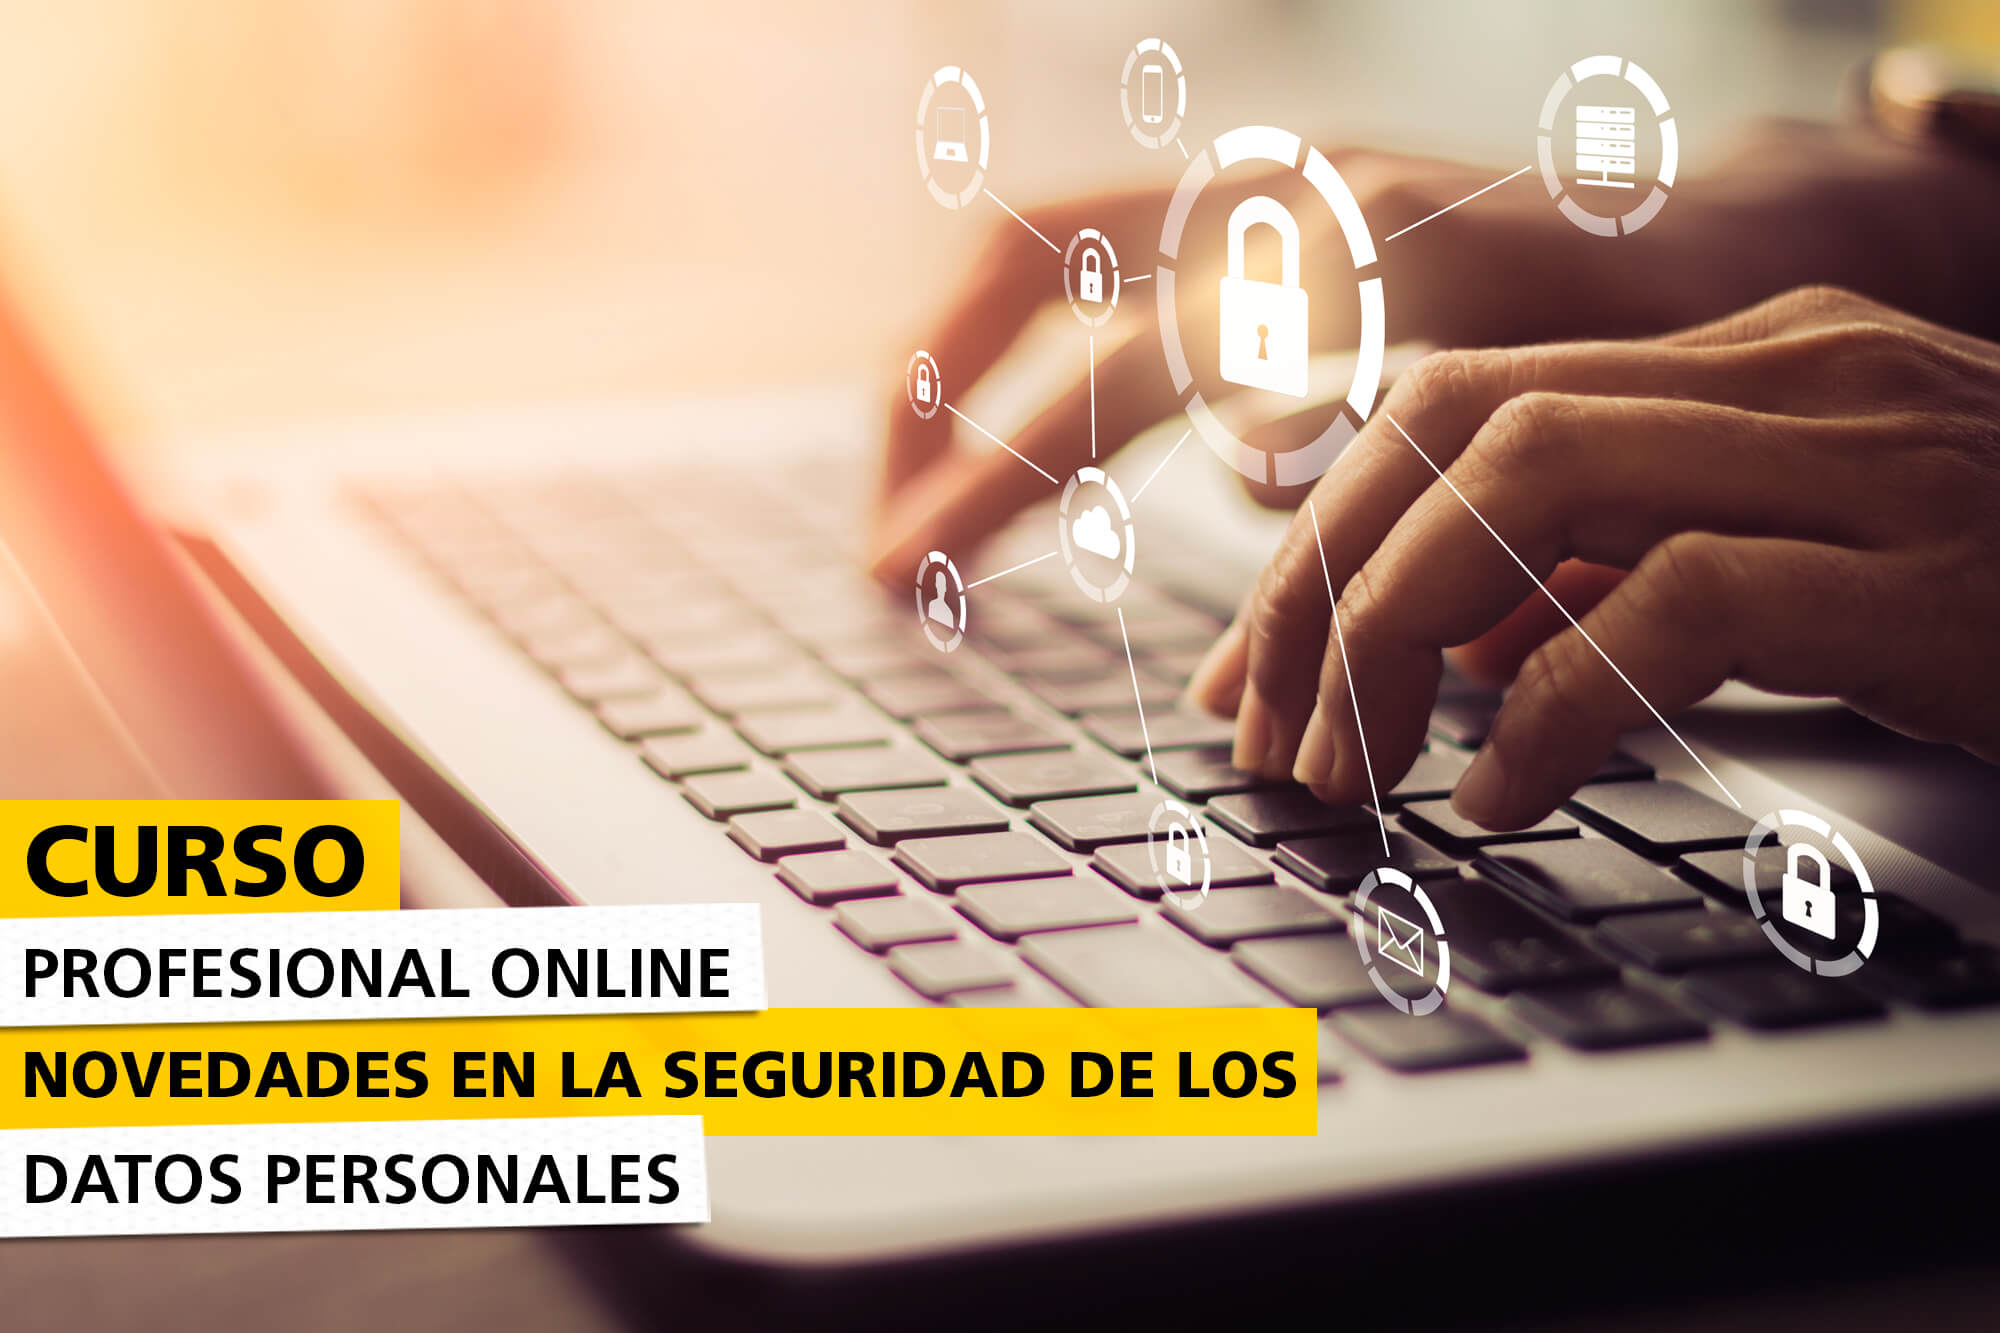 CO-seguridad-datos-personales-img-destacada